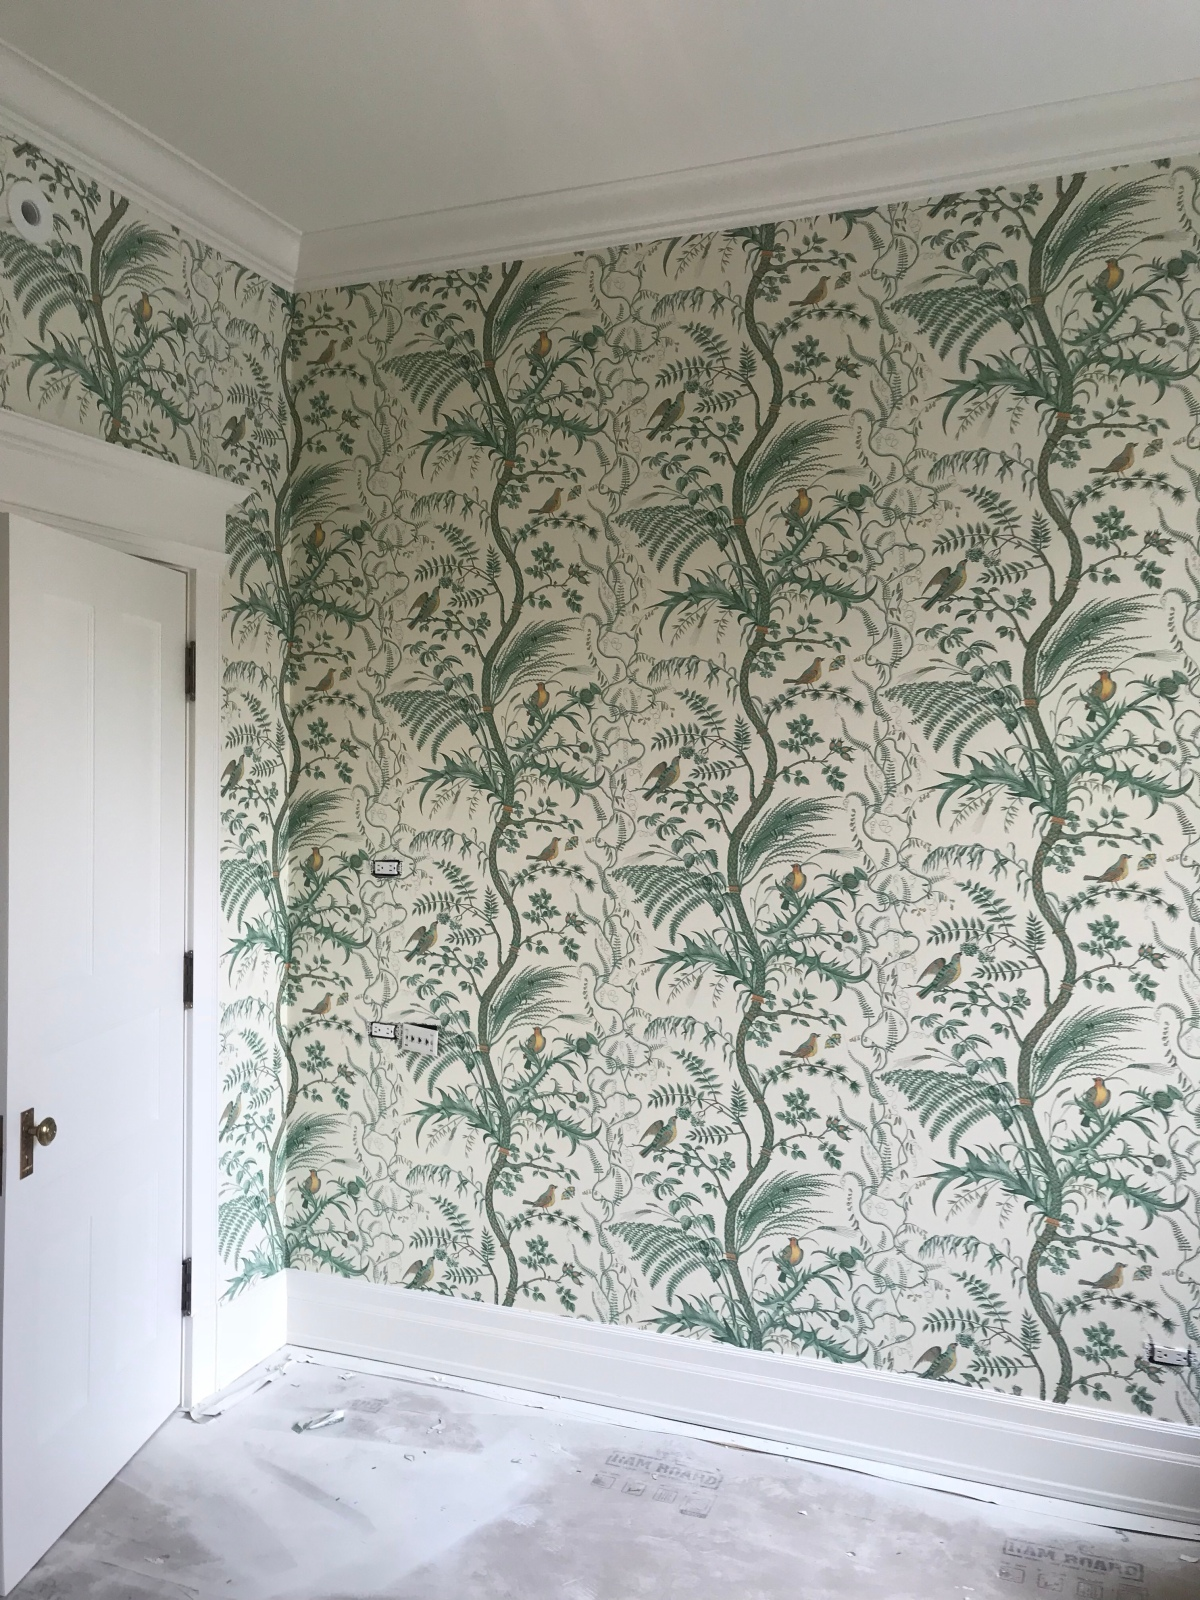 Guest bedroom, wallpapered